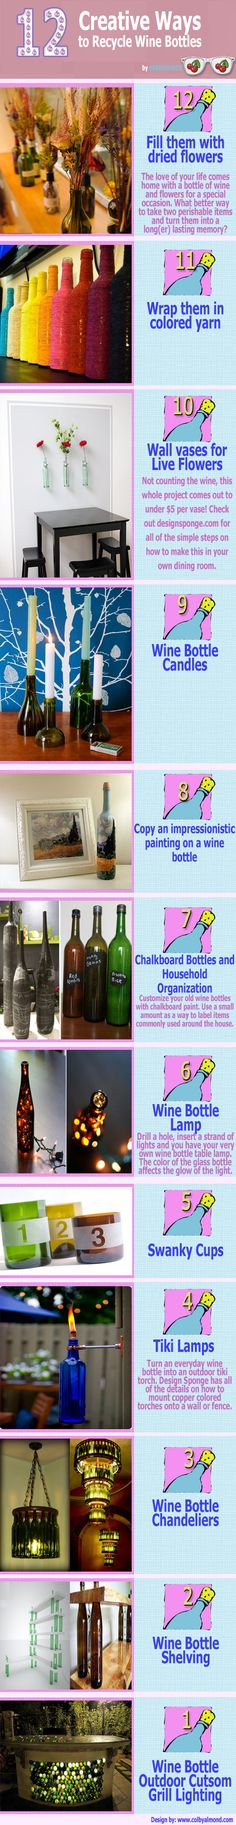 Creative way to recycle wine bottles